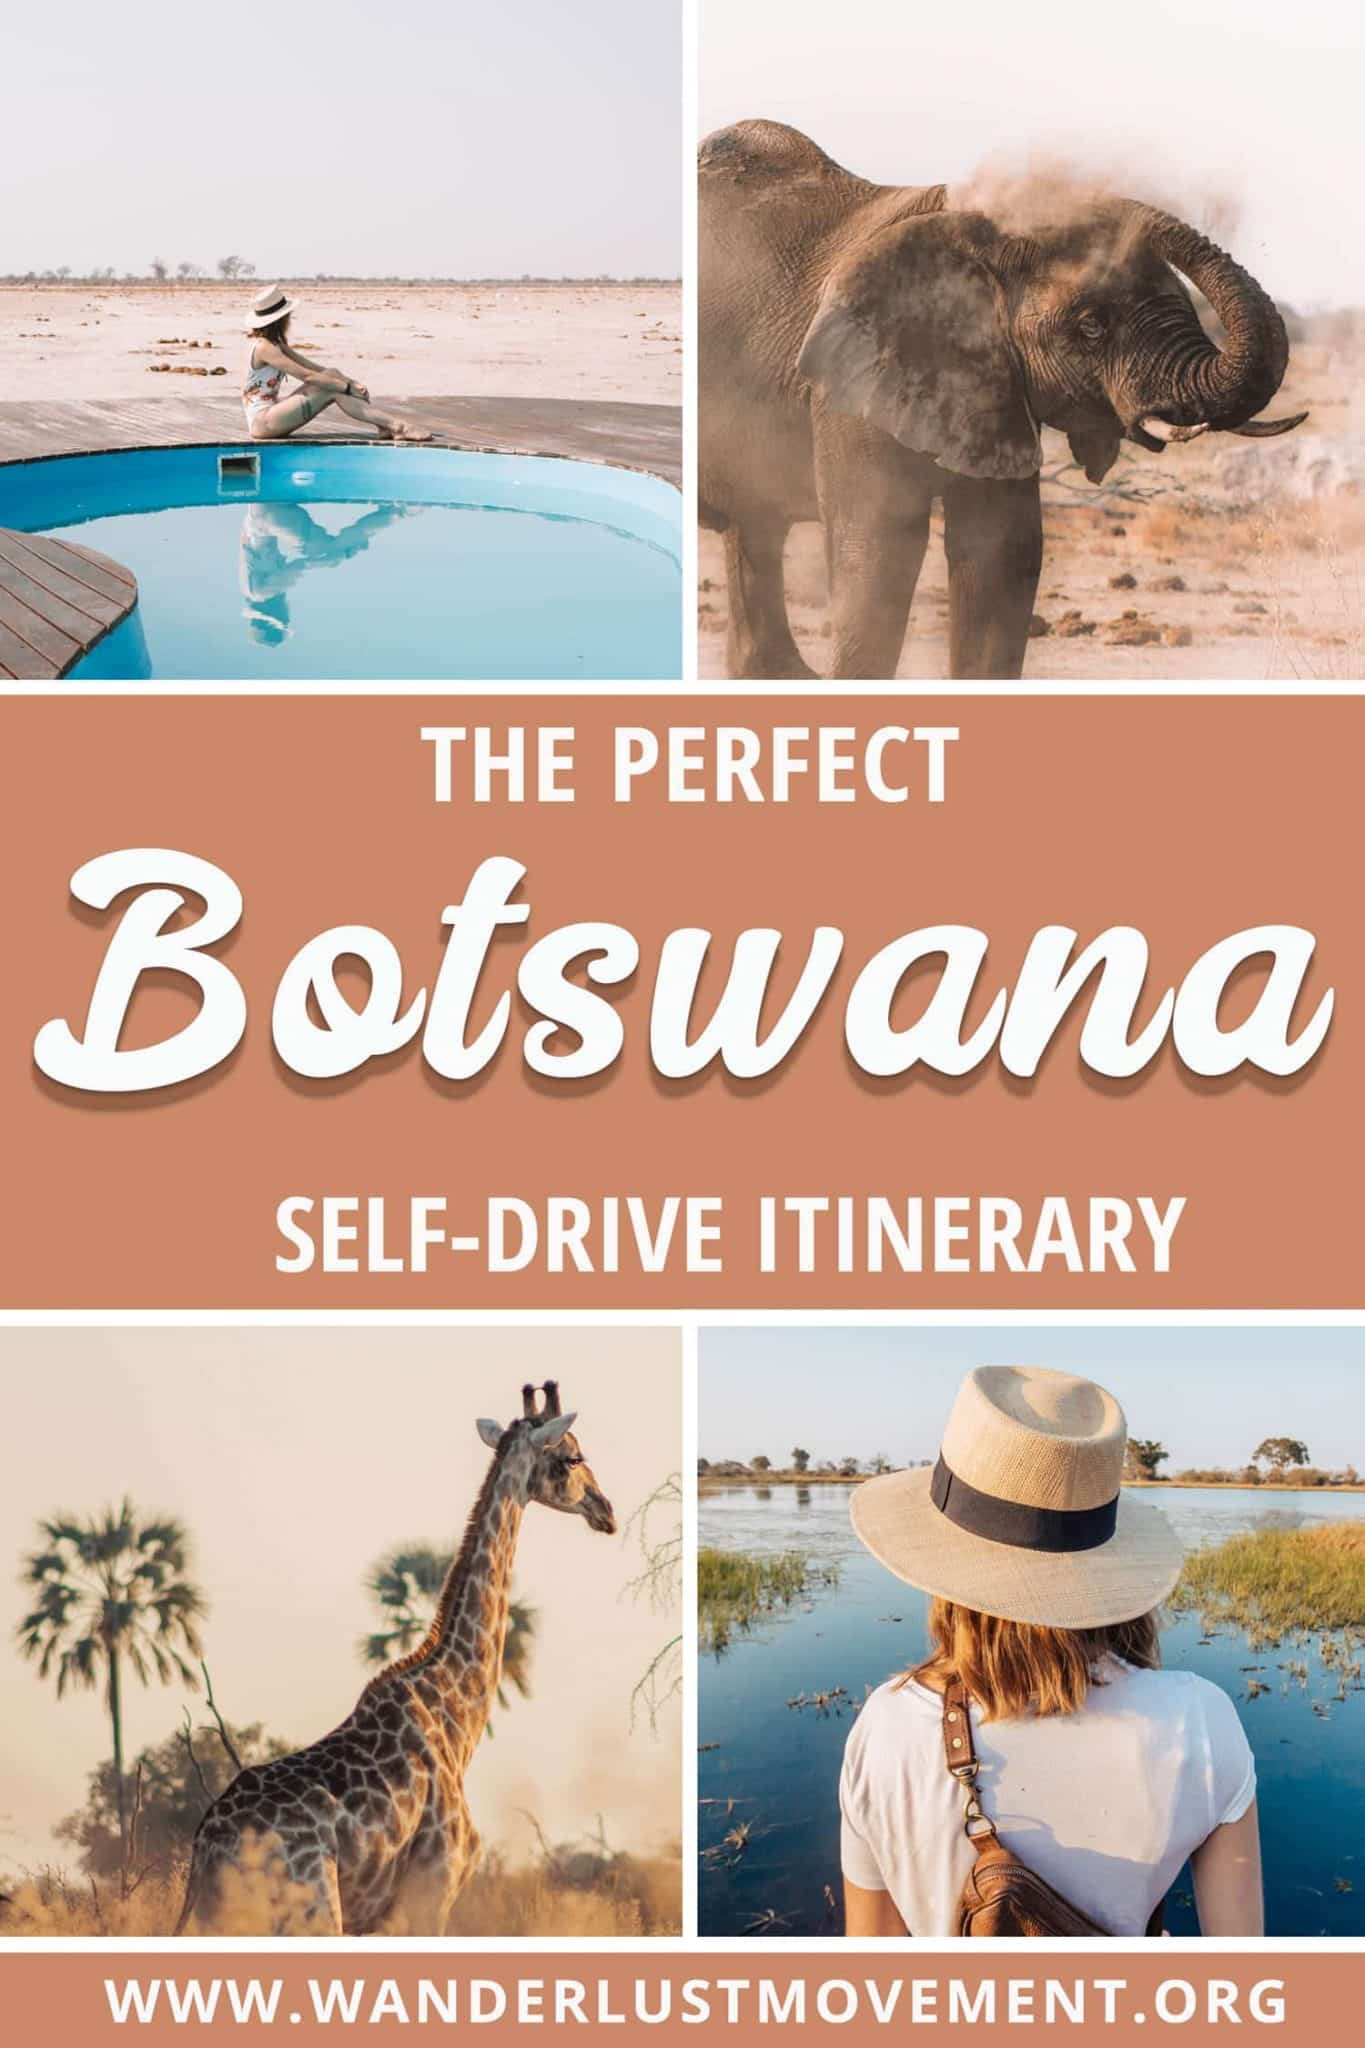 The Perfect Self-Drive Botswana Itinerary for an Epic Safari Trip